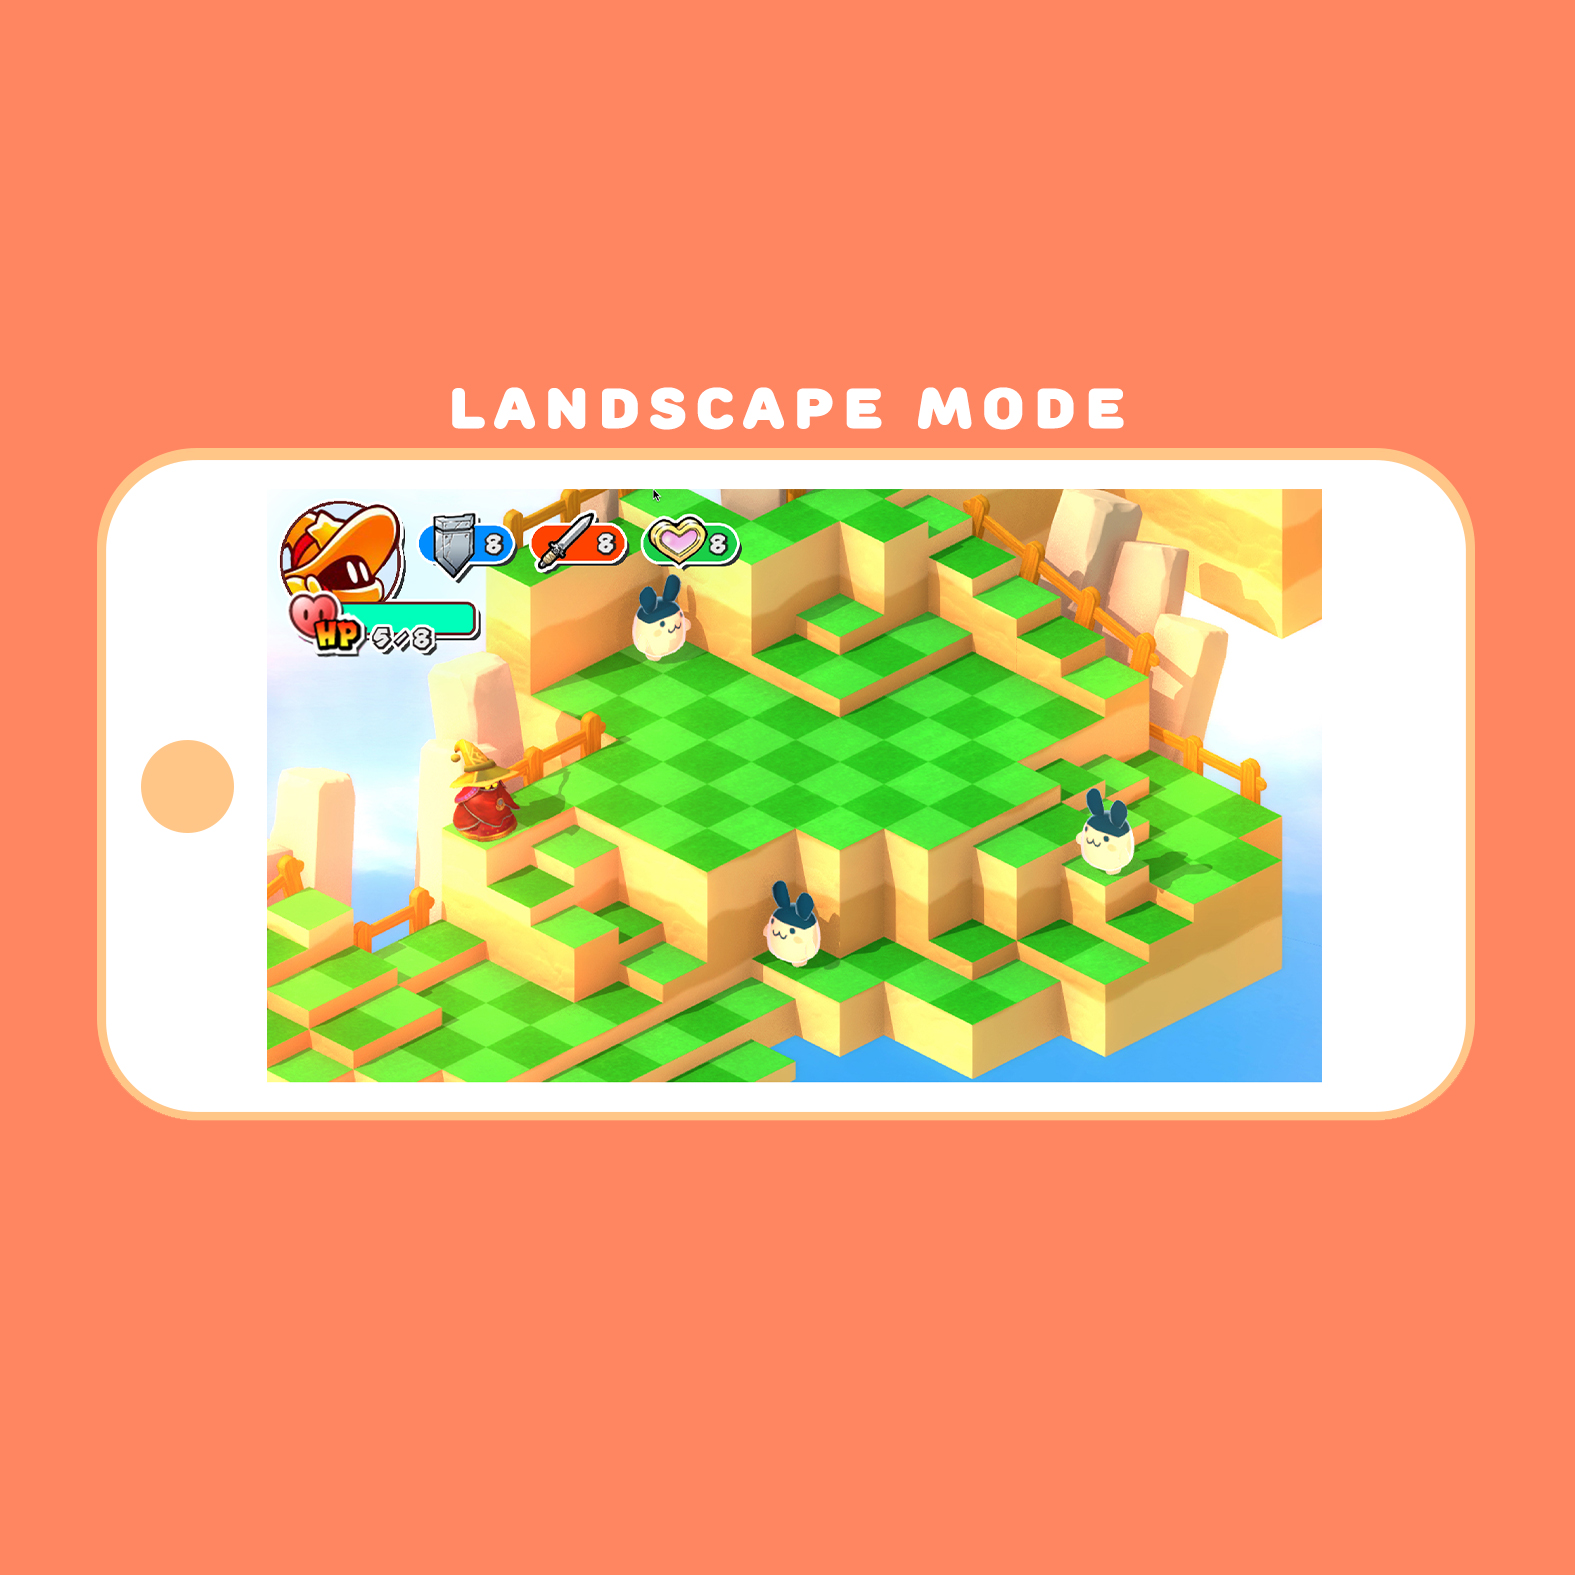 Copy of Mobile strategy game in landscape mode